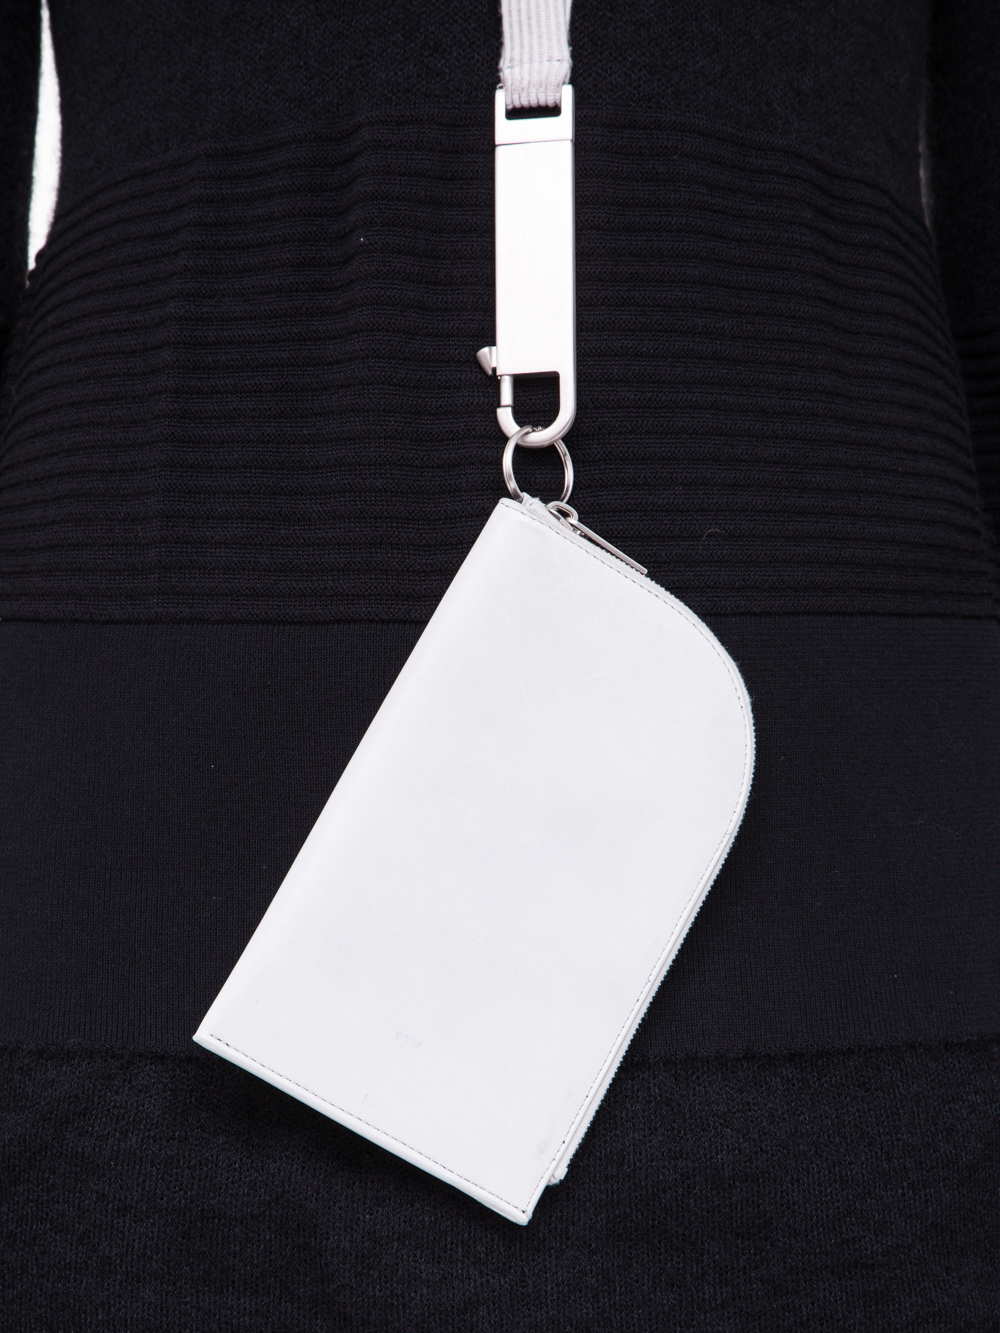 RICK OWENS SS19 BABEL CLASSIC NECKWALLET IN OYSTER LIGHT GREY